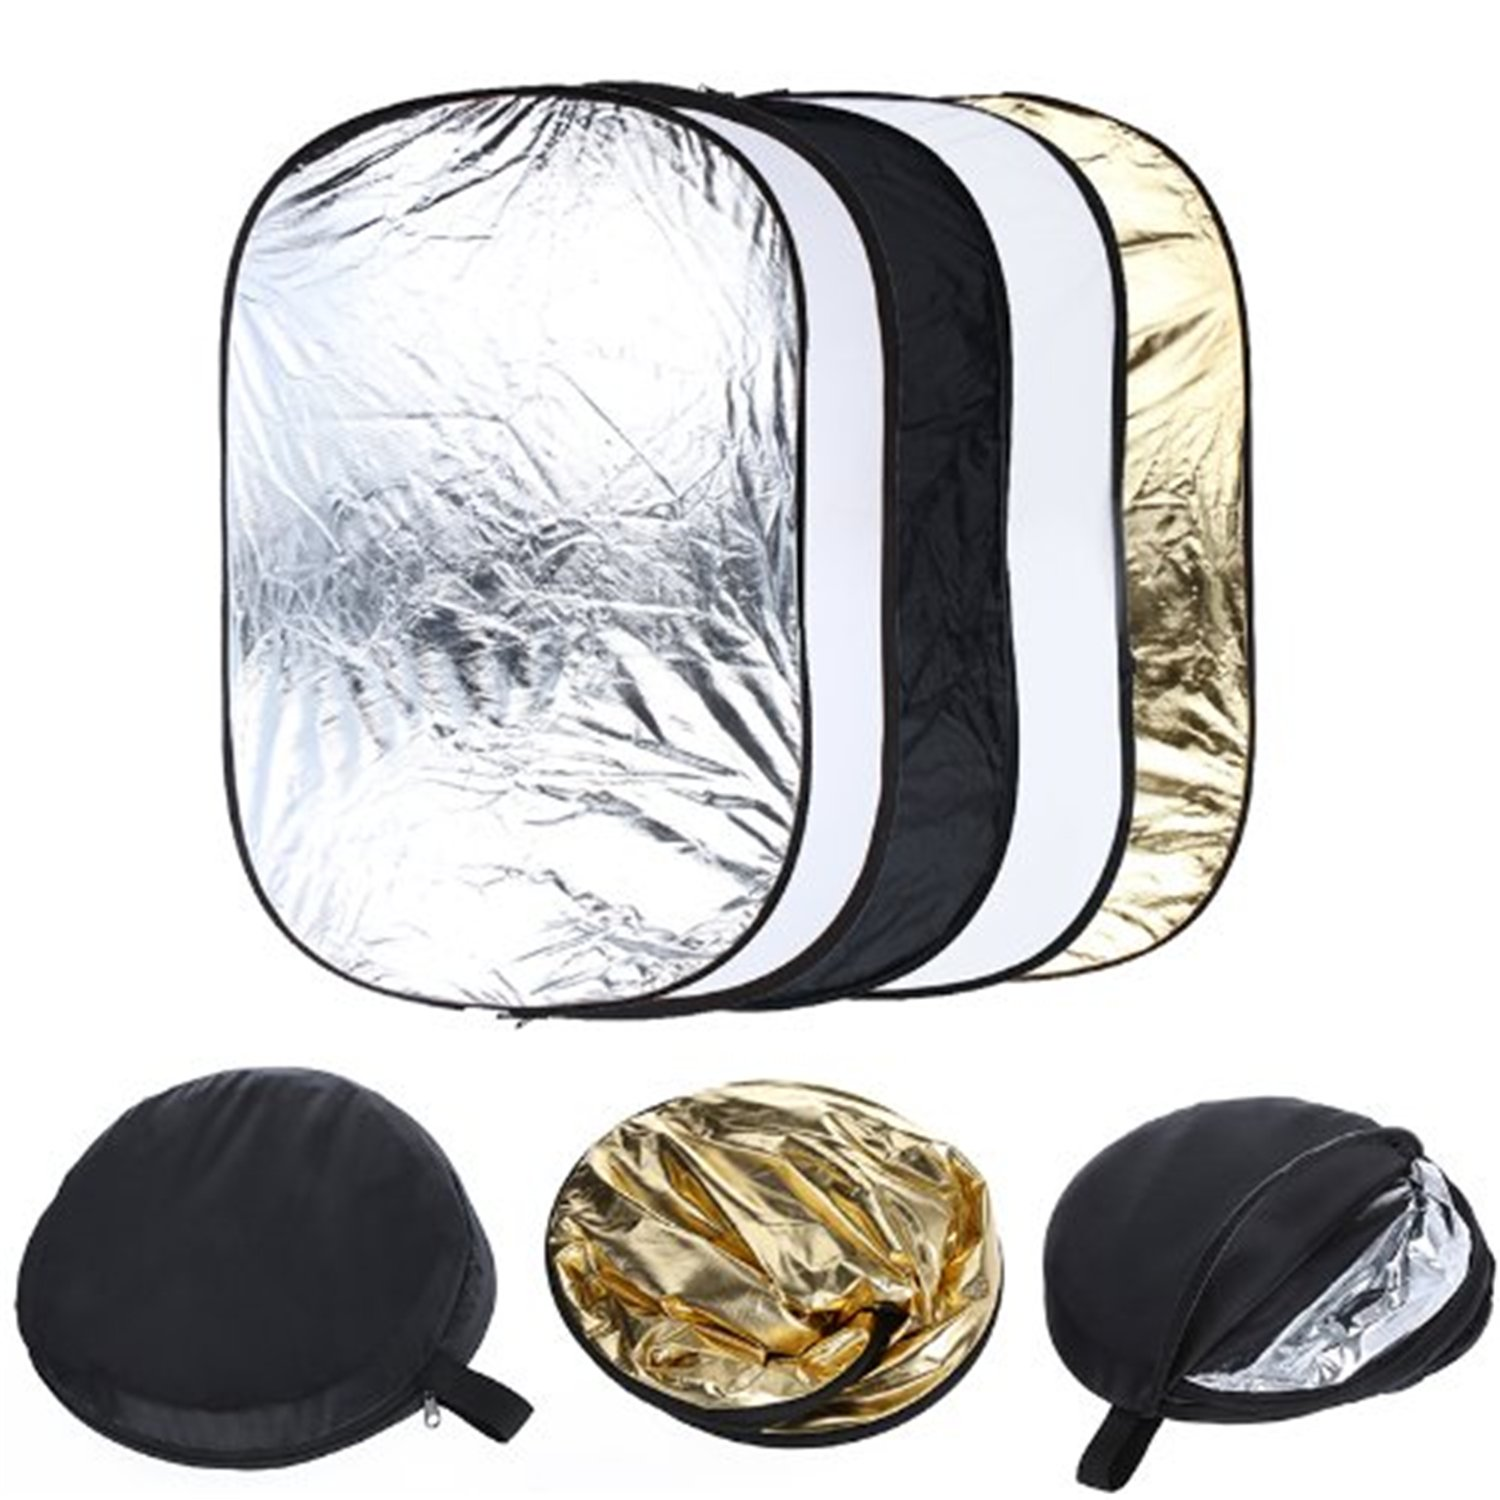 ETC 61 91cm 5 in 1 Portable Photography Collapsible Light Reflector